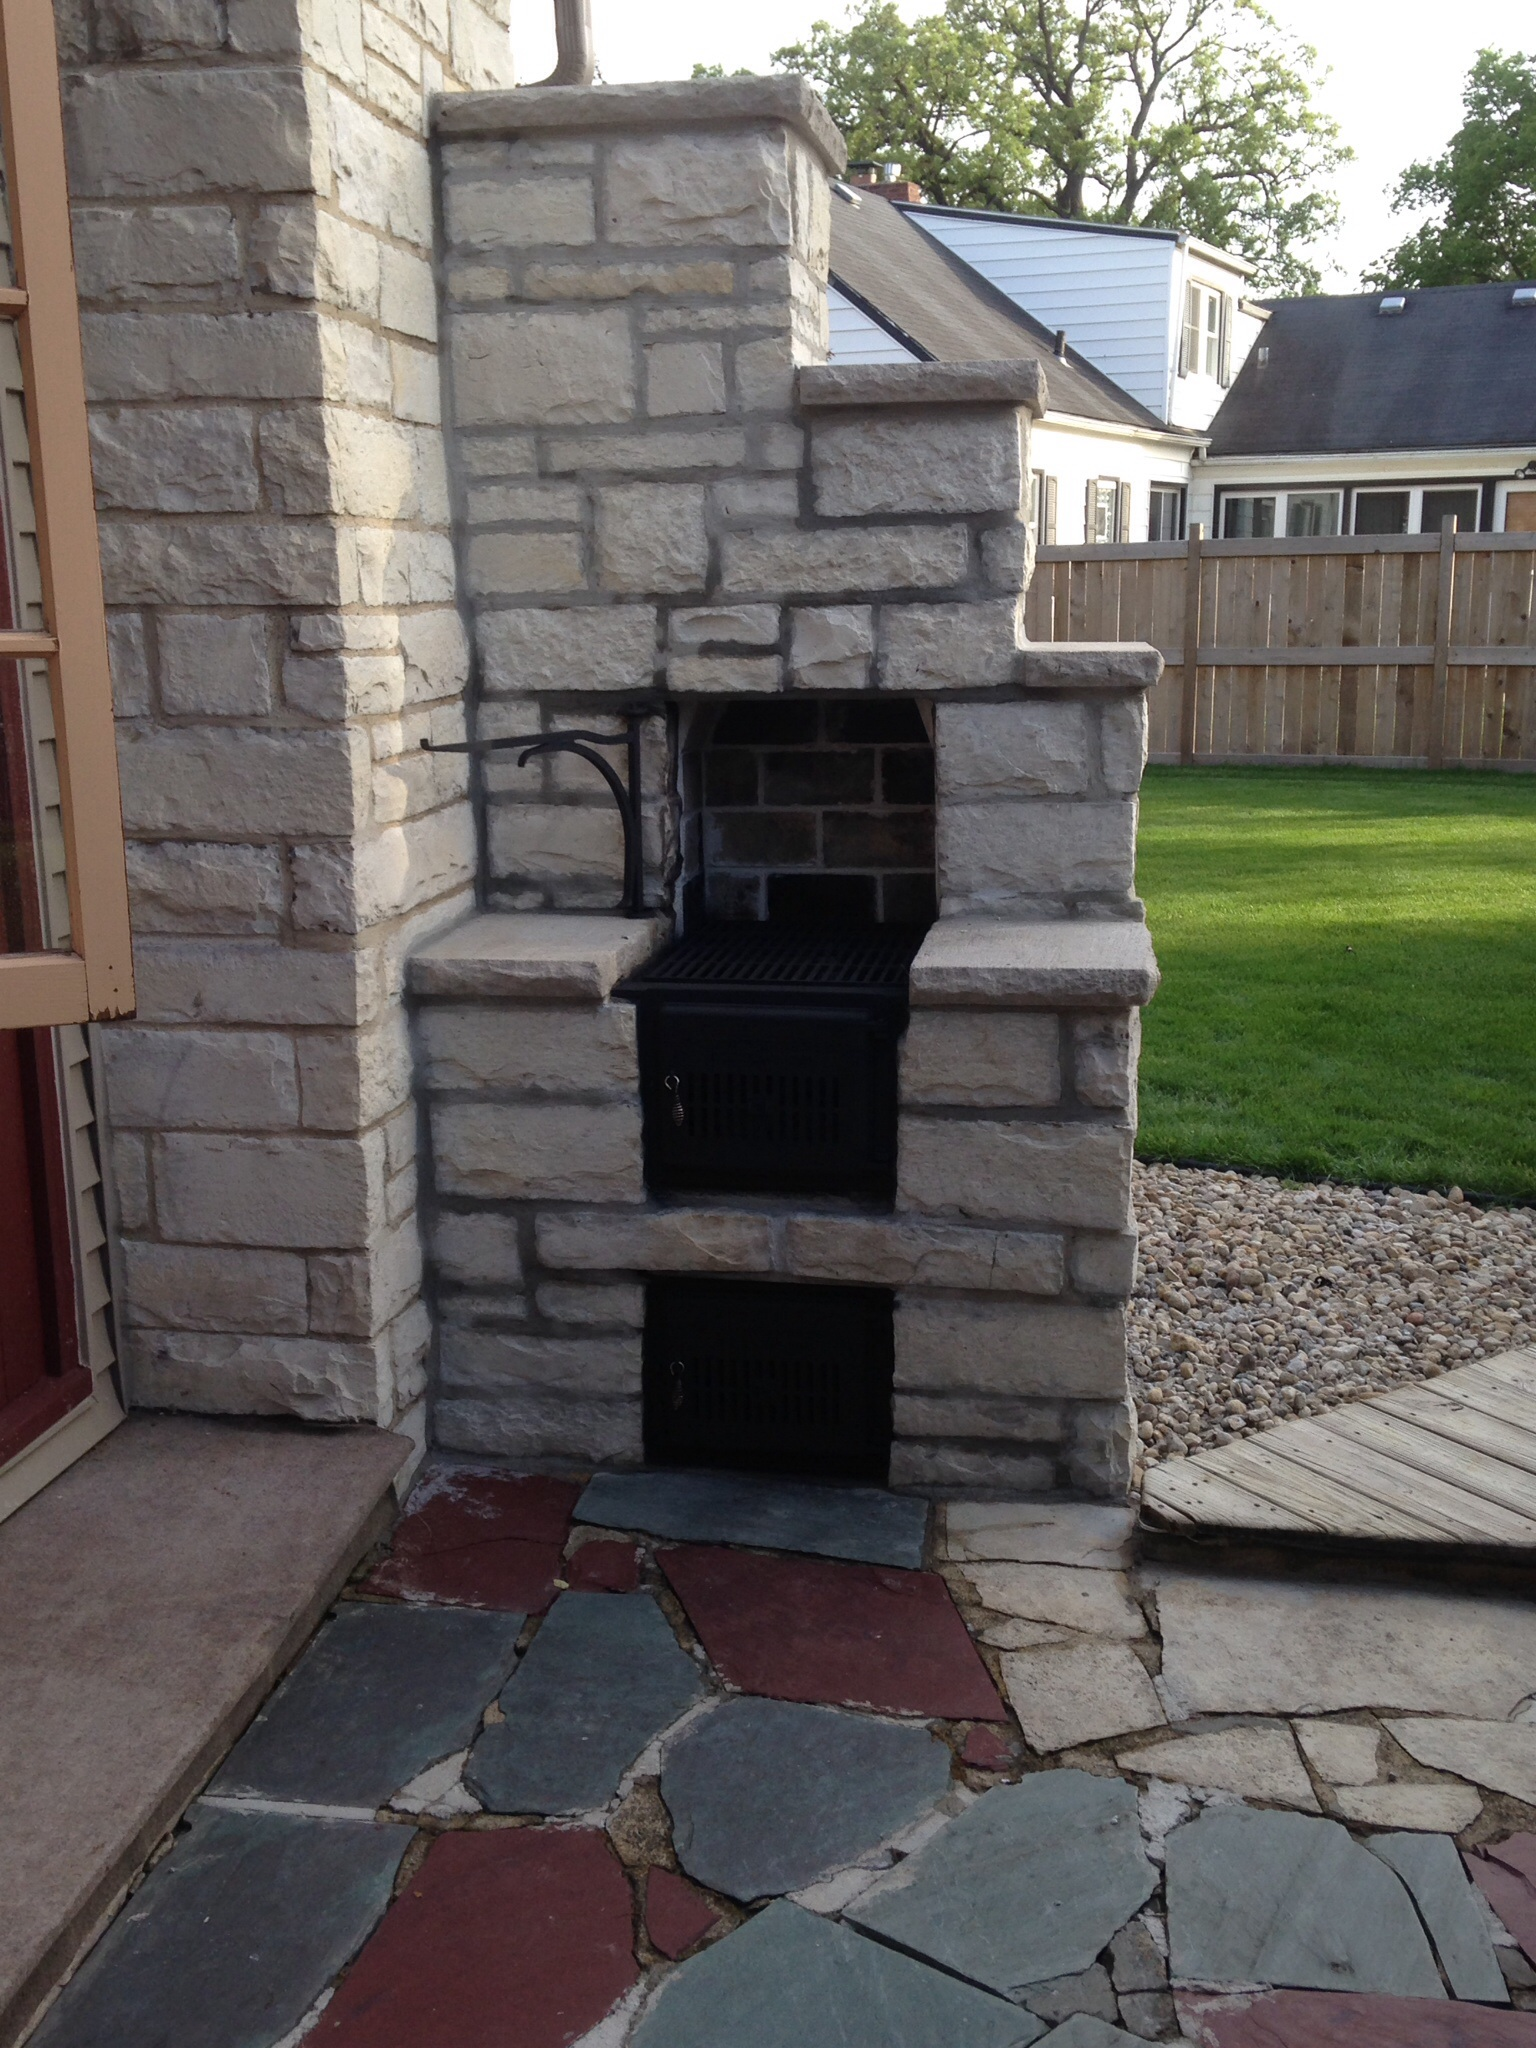 donley bros co vented ash clean out u2014 heating help the wall